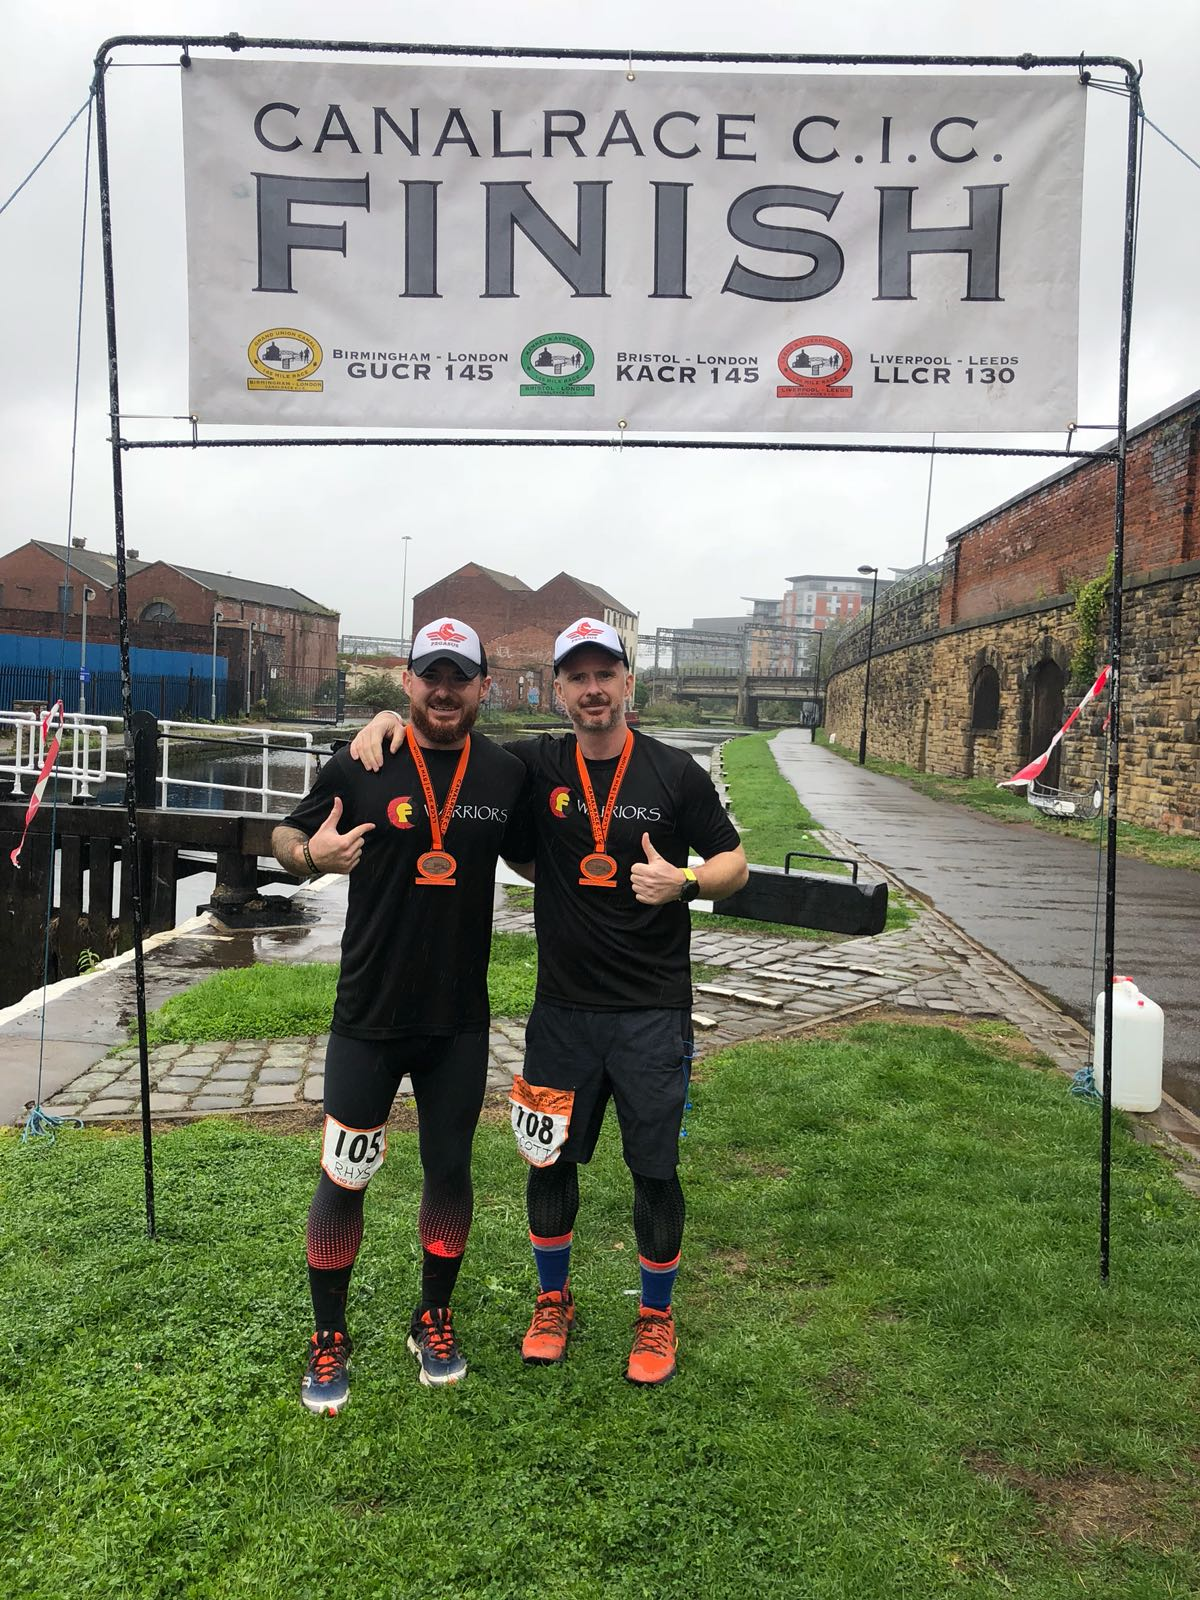 2018: Mile 130 of Liverpool to Leeds finishing joint 11th whilst raising awareness for CF Warriors.